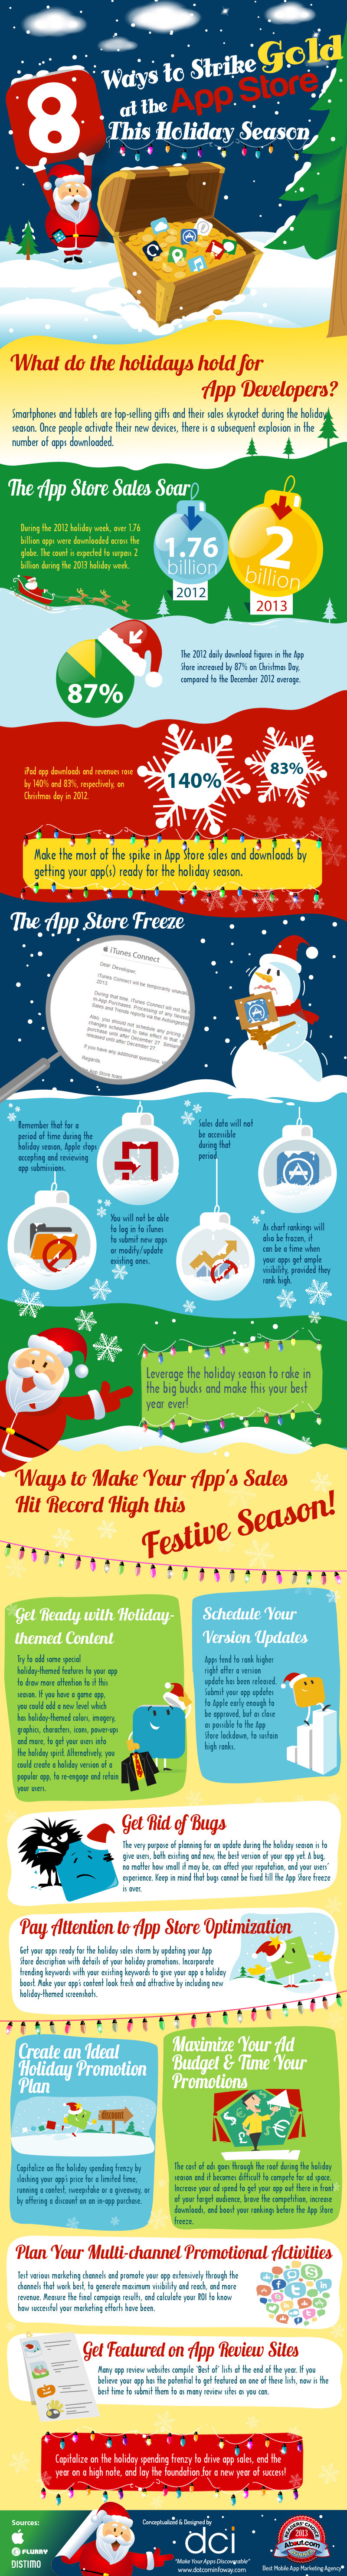 infographic-8-Ways-to-Strike-Gold-at-the-App-Store-This-Holiday-Season